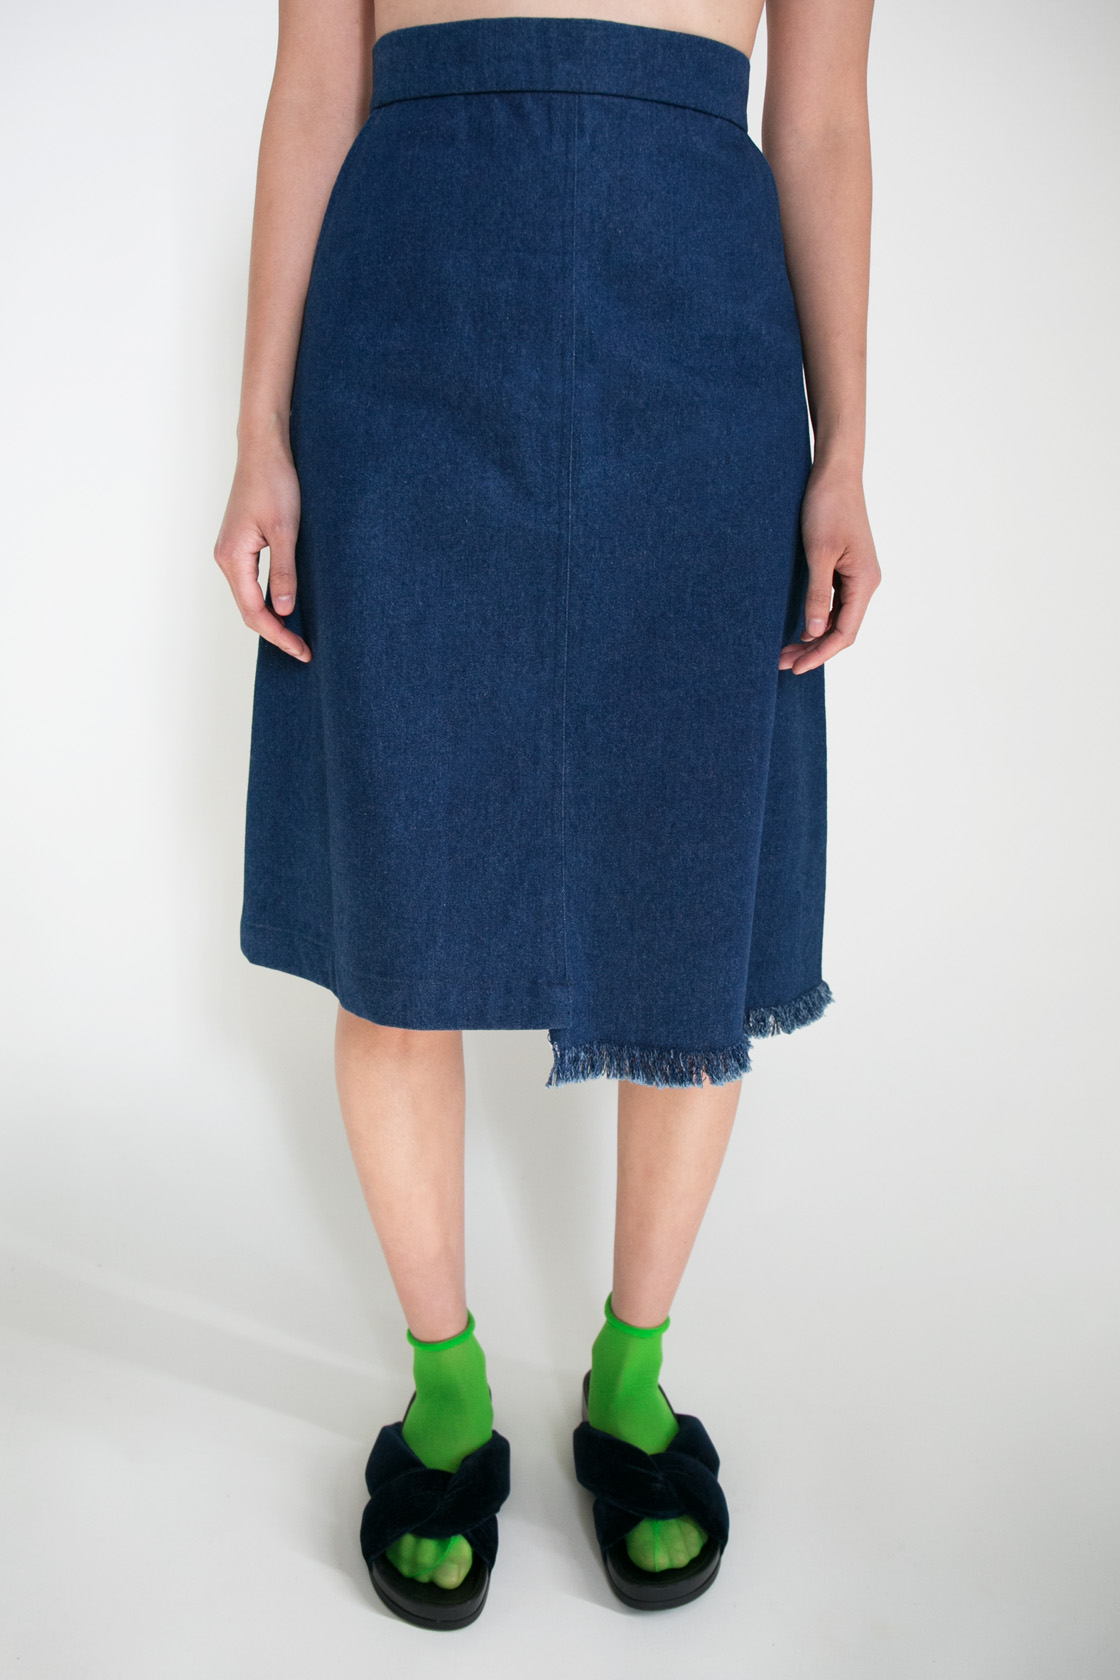 Giro Denim Skirt  XS S M L  $245